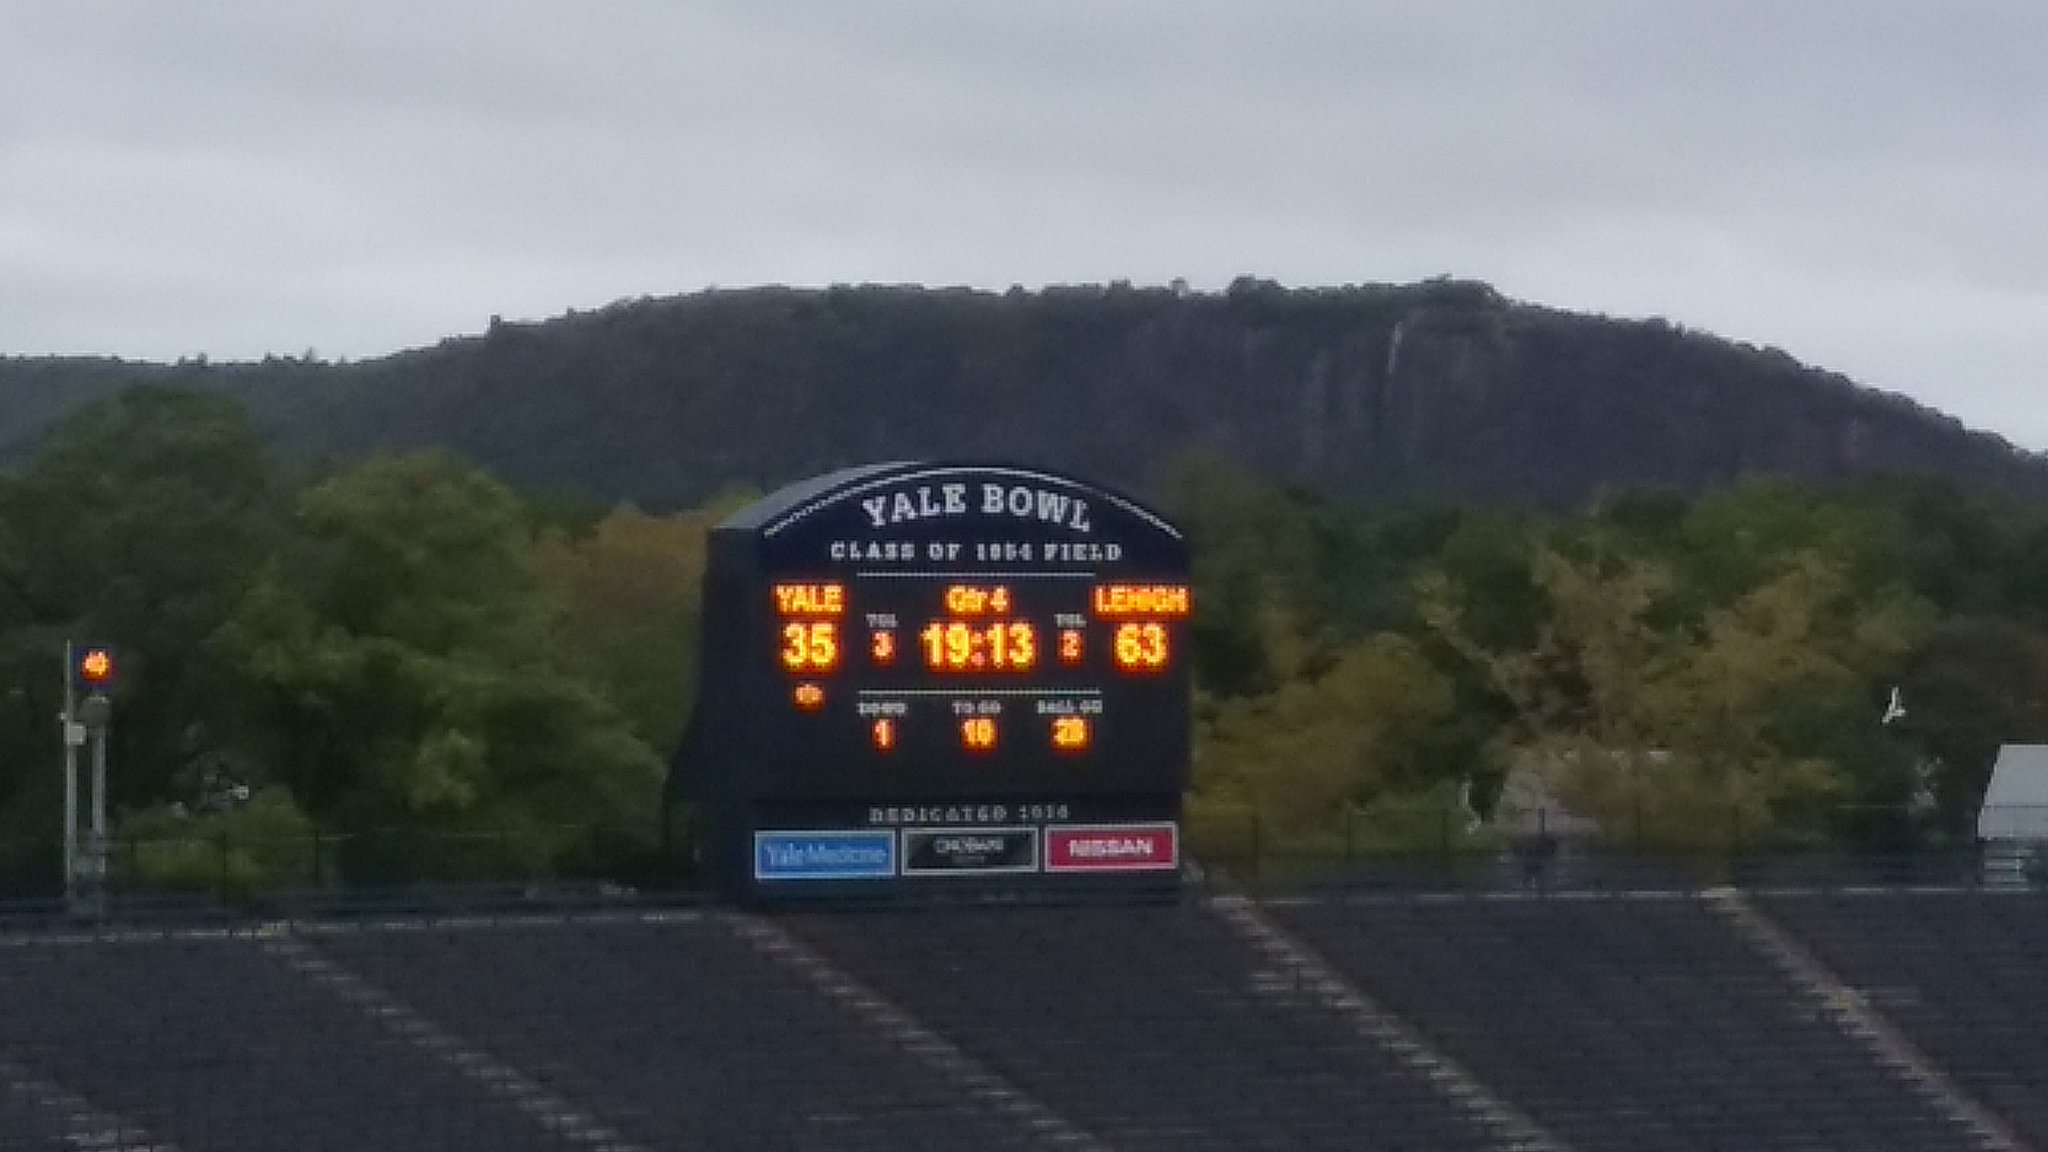 QUICK RECAP: Record-Smashing Day At the Yale Bowl As Lehigh Beats Bulldogs 63-35